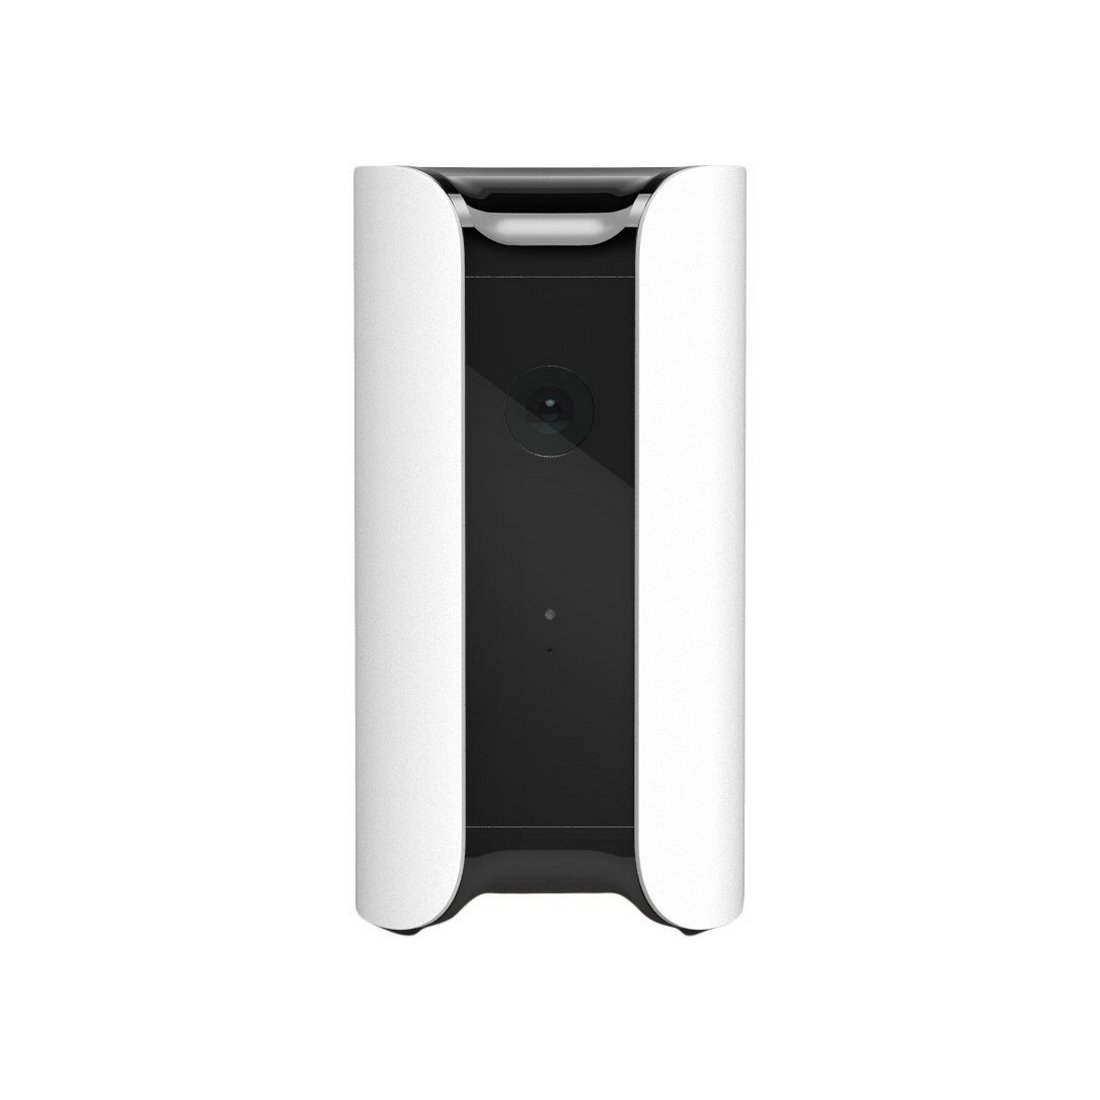 Canary All-in-One Home Security Device – Black